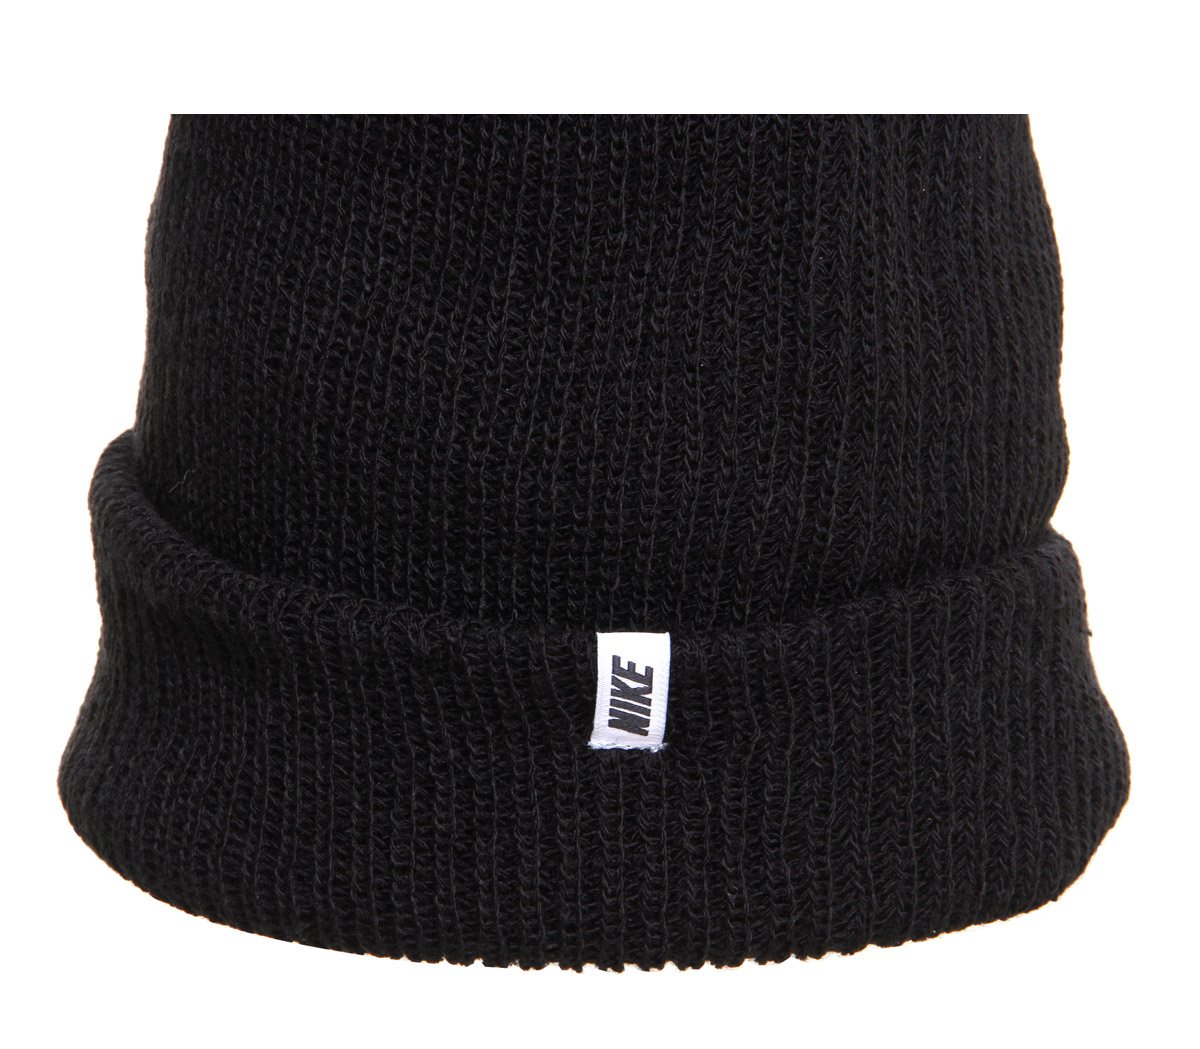 a0e65826144 Lyst - Nike Beanie Core in Black for Men